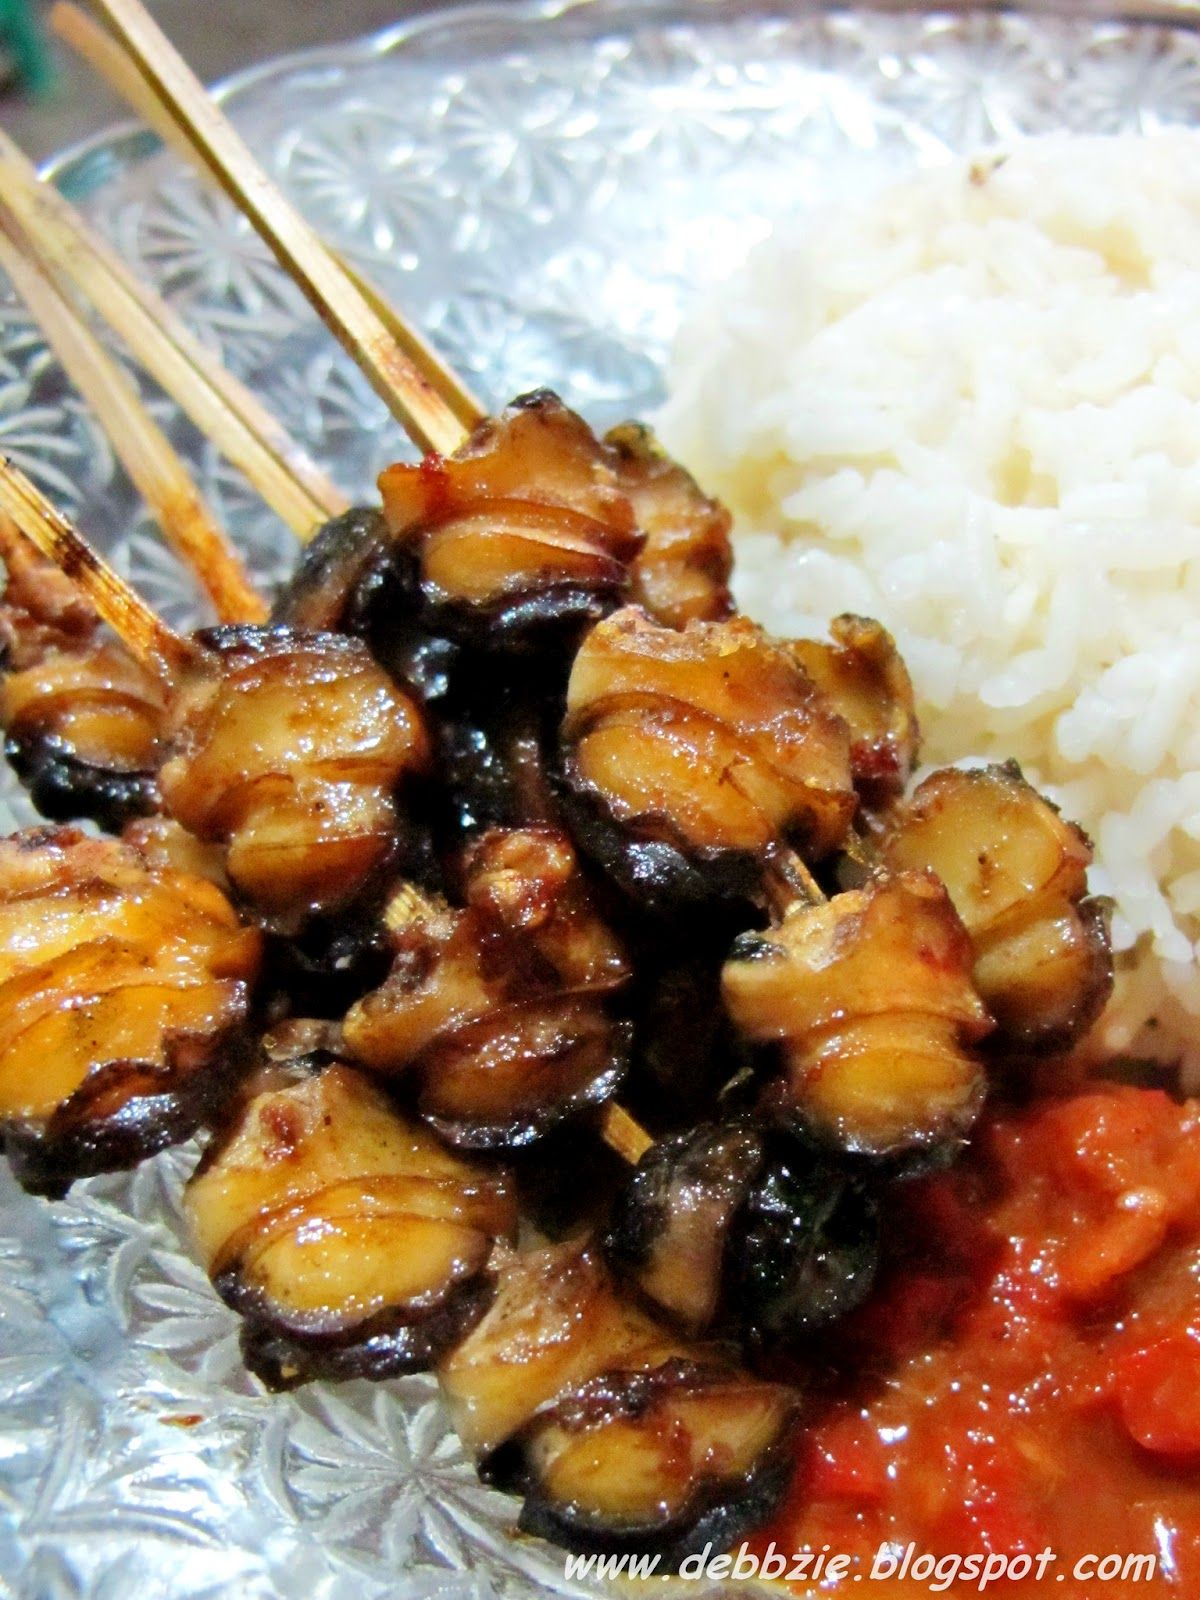 Sate Kakul, the Balinese term for freshwater snail which normally lives in the rice fields. It's marinated with the mixture of shallot, garlic, salt, palm sugar, ginger, etc. Can be served with plecing sauce.